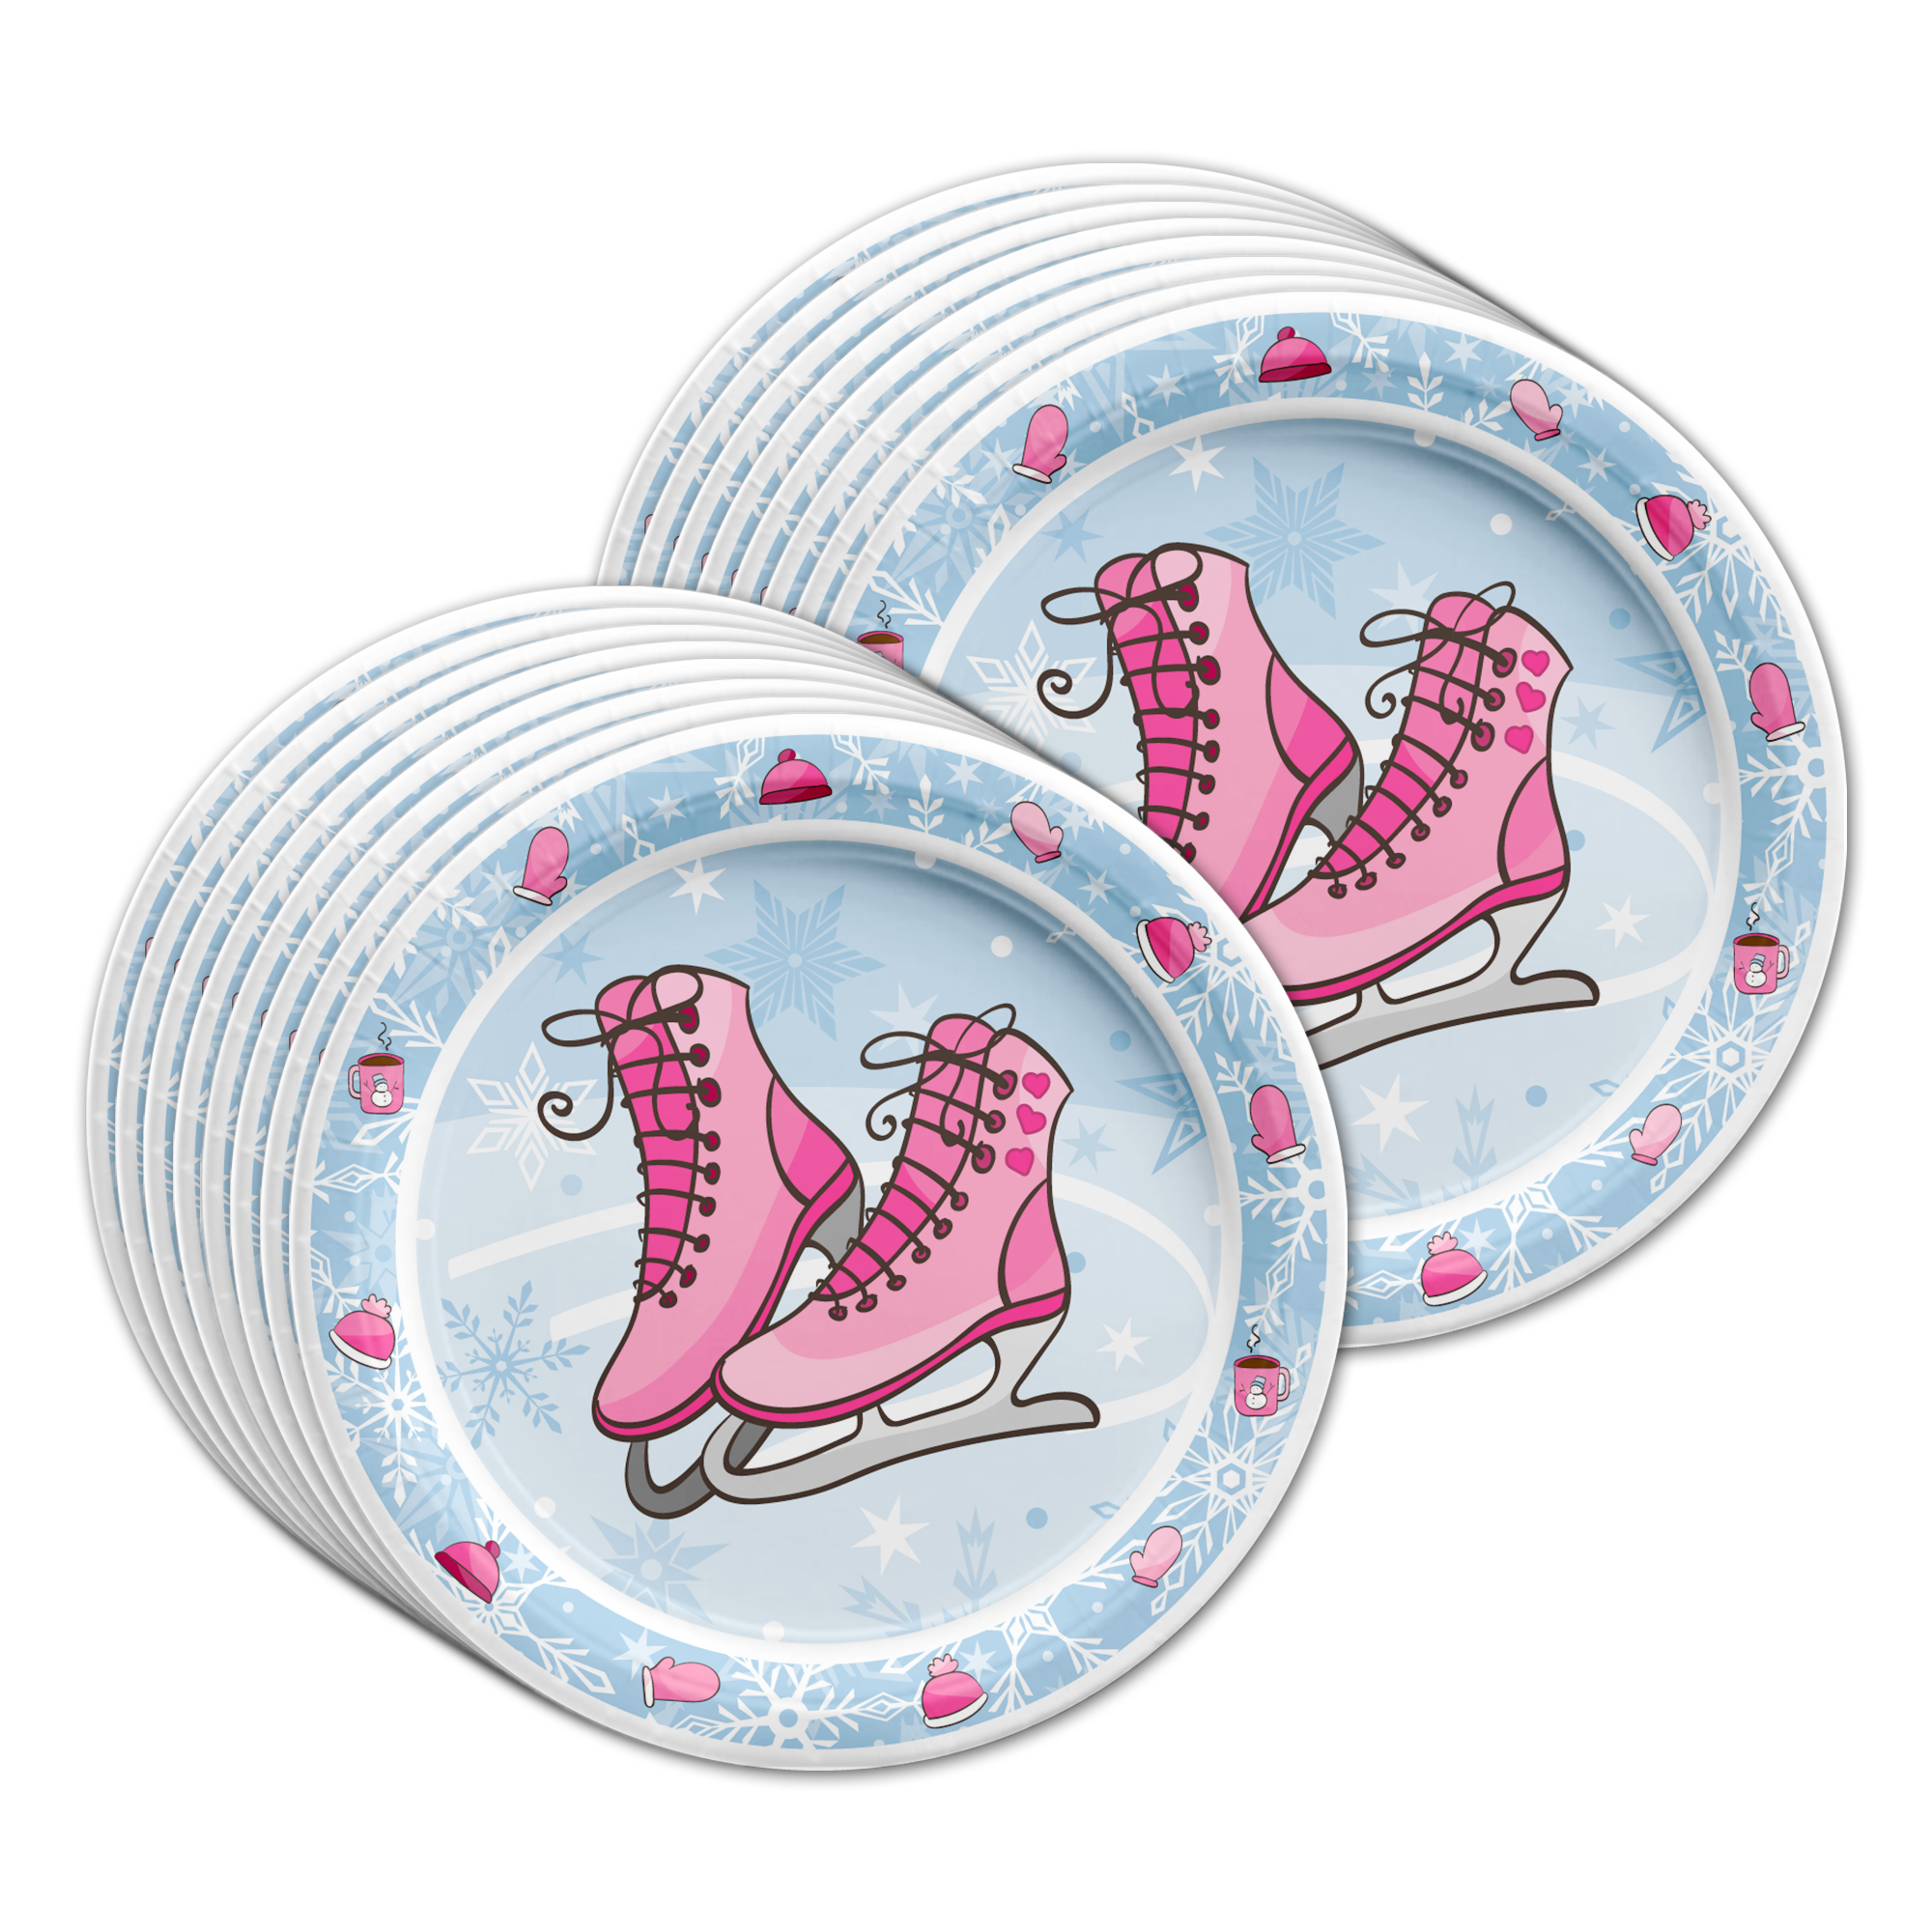 Ice Skating Birthday Party Tableware Kit For 16 Guests - BirthdayGalore.com